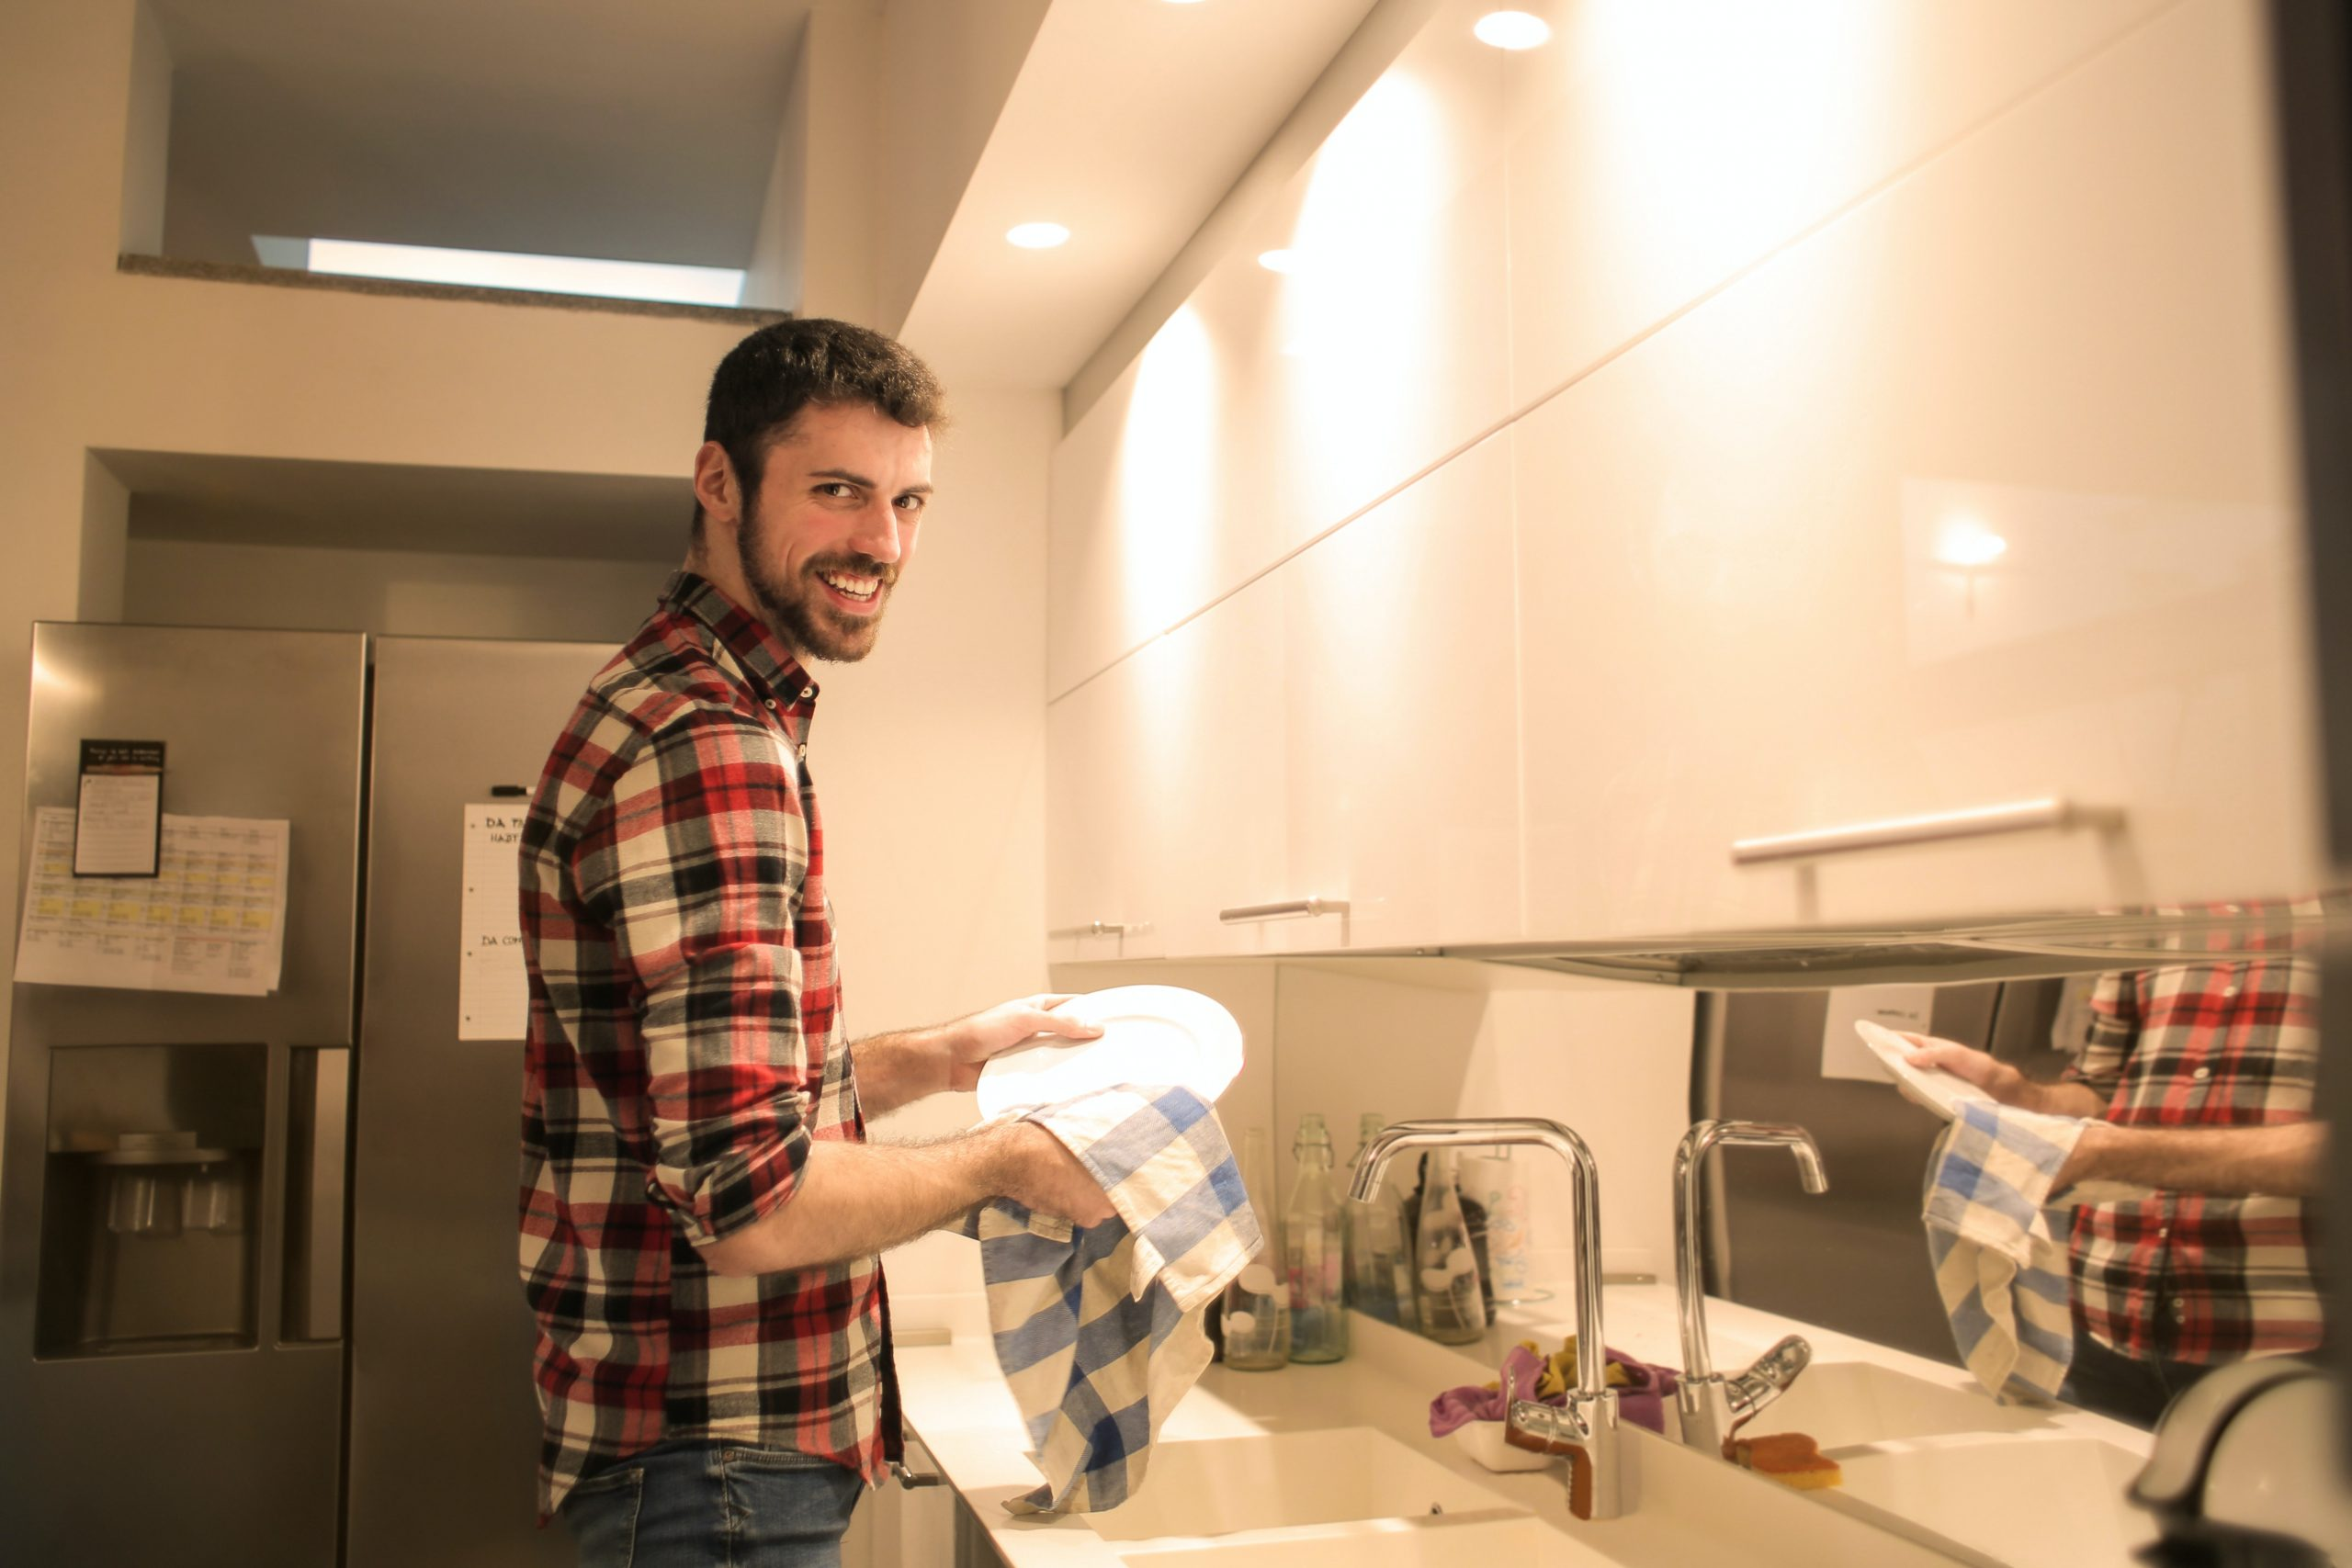 Man while cleaning a plate in the kitchen